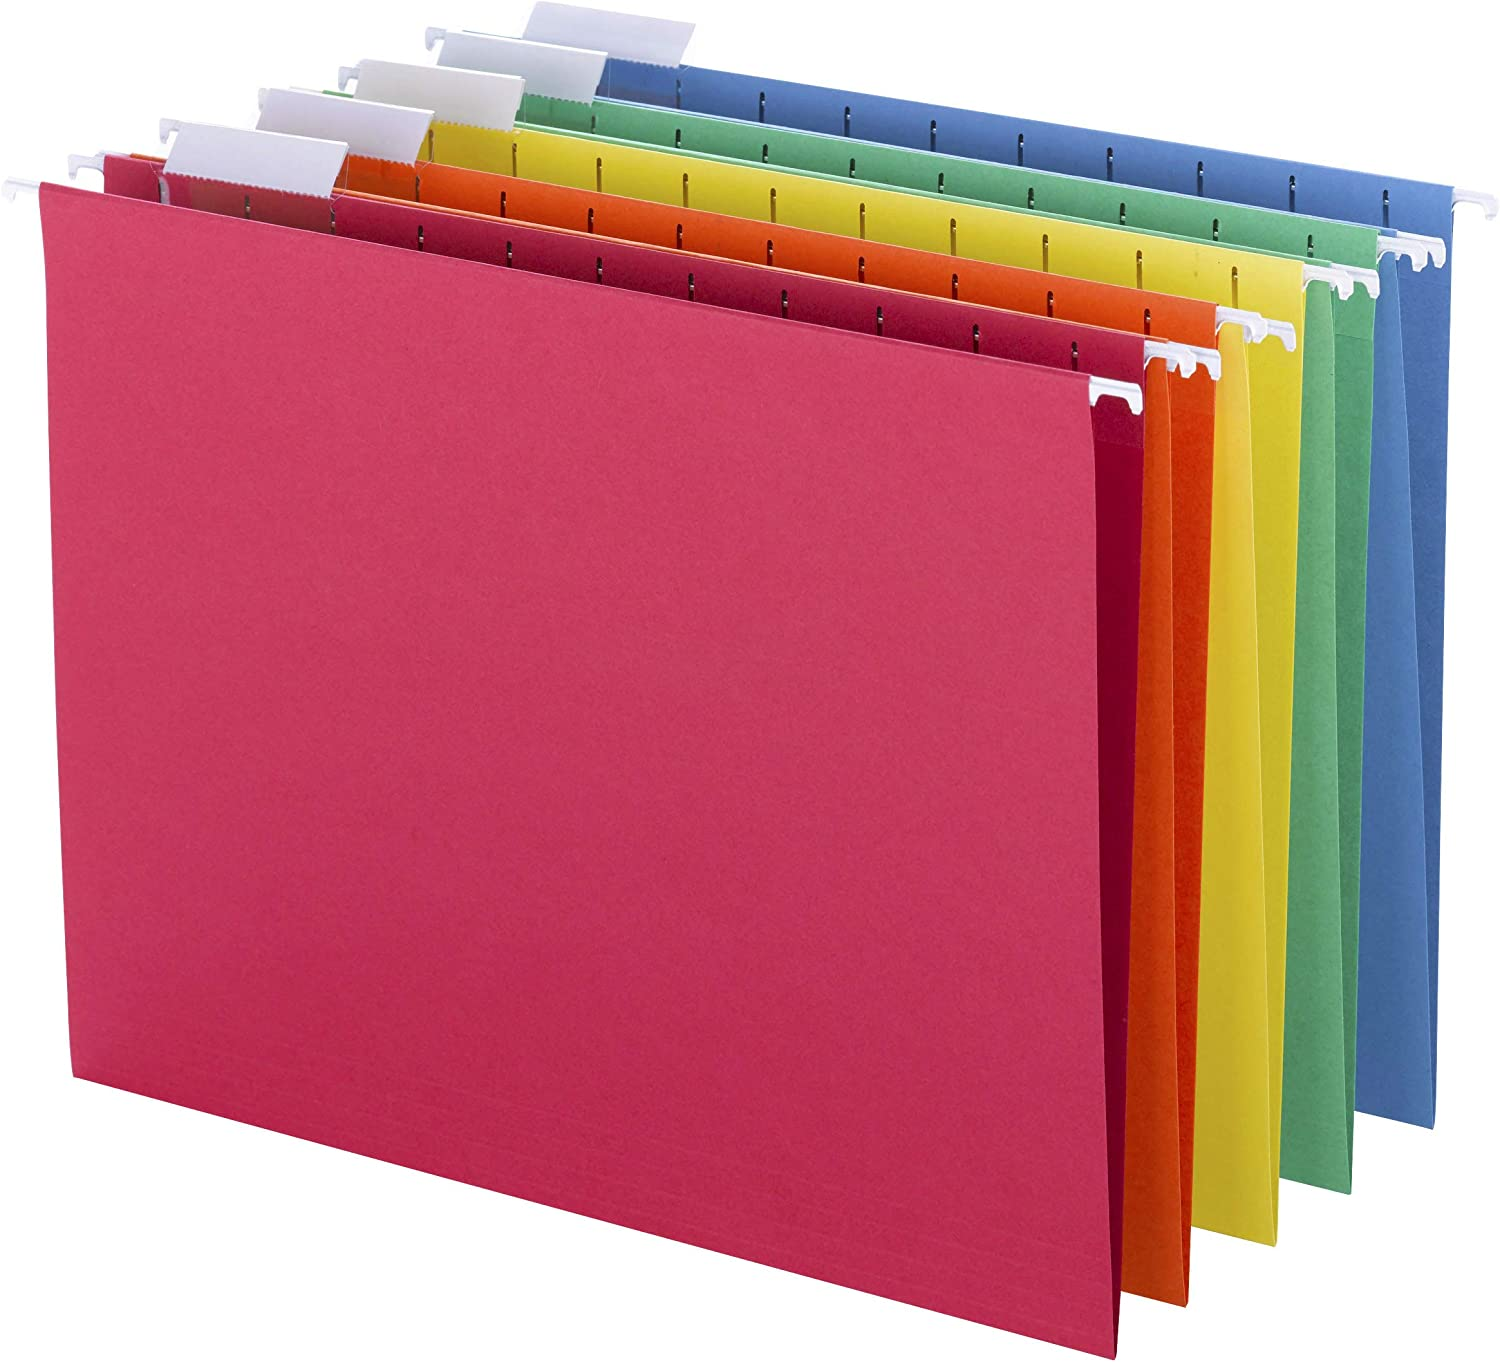 B00006IF4G Smead Colored Hanging File Folder with Tab, 1/5-Cut Adjustable Tab, Letter Size, Assorted Primary Colors, 25 Per Box (64059) 81w4wJ2ByAjL